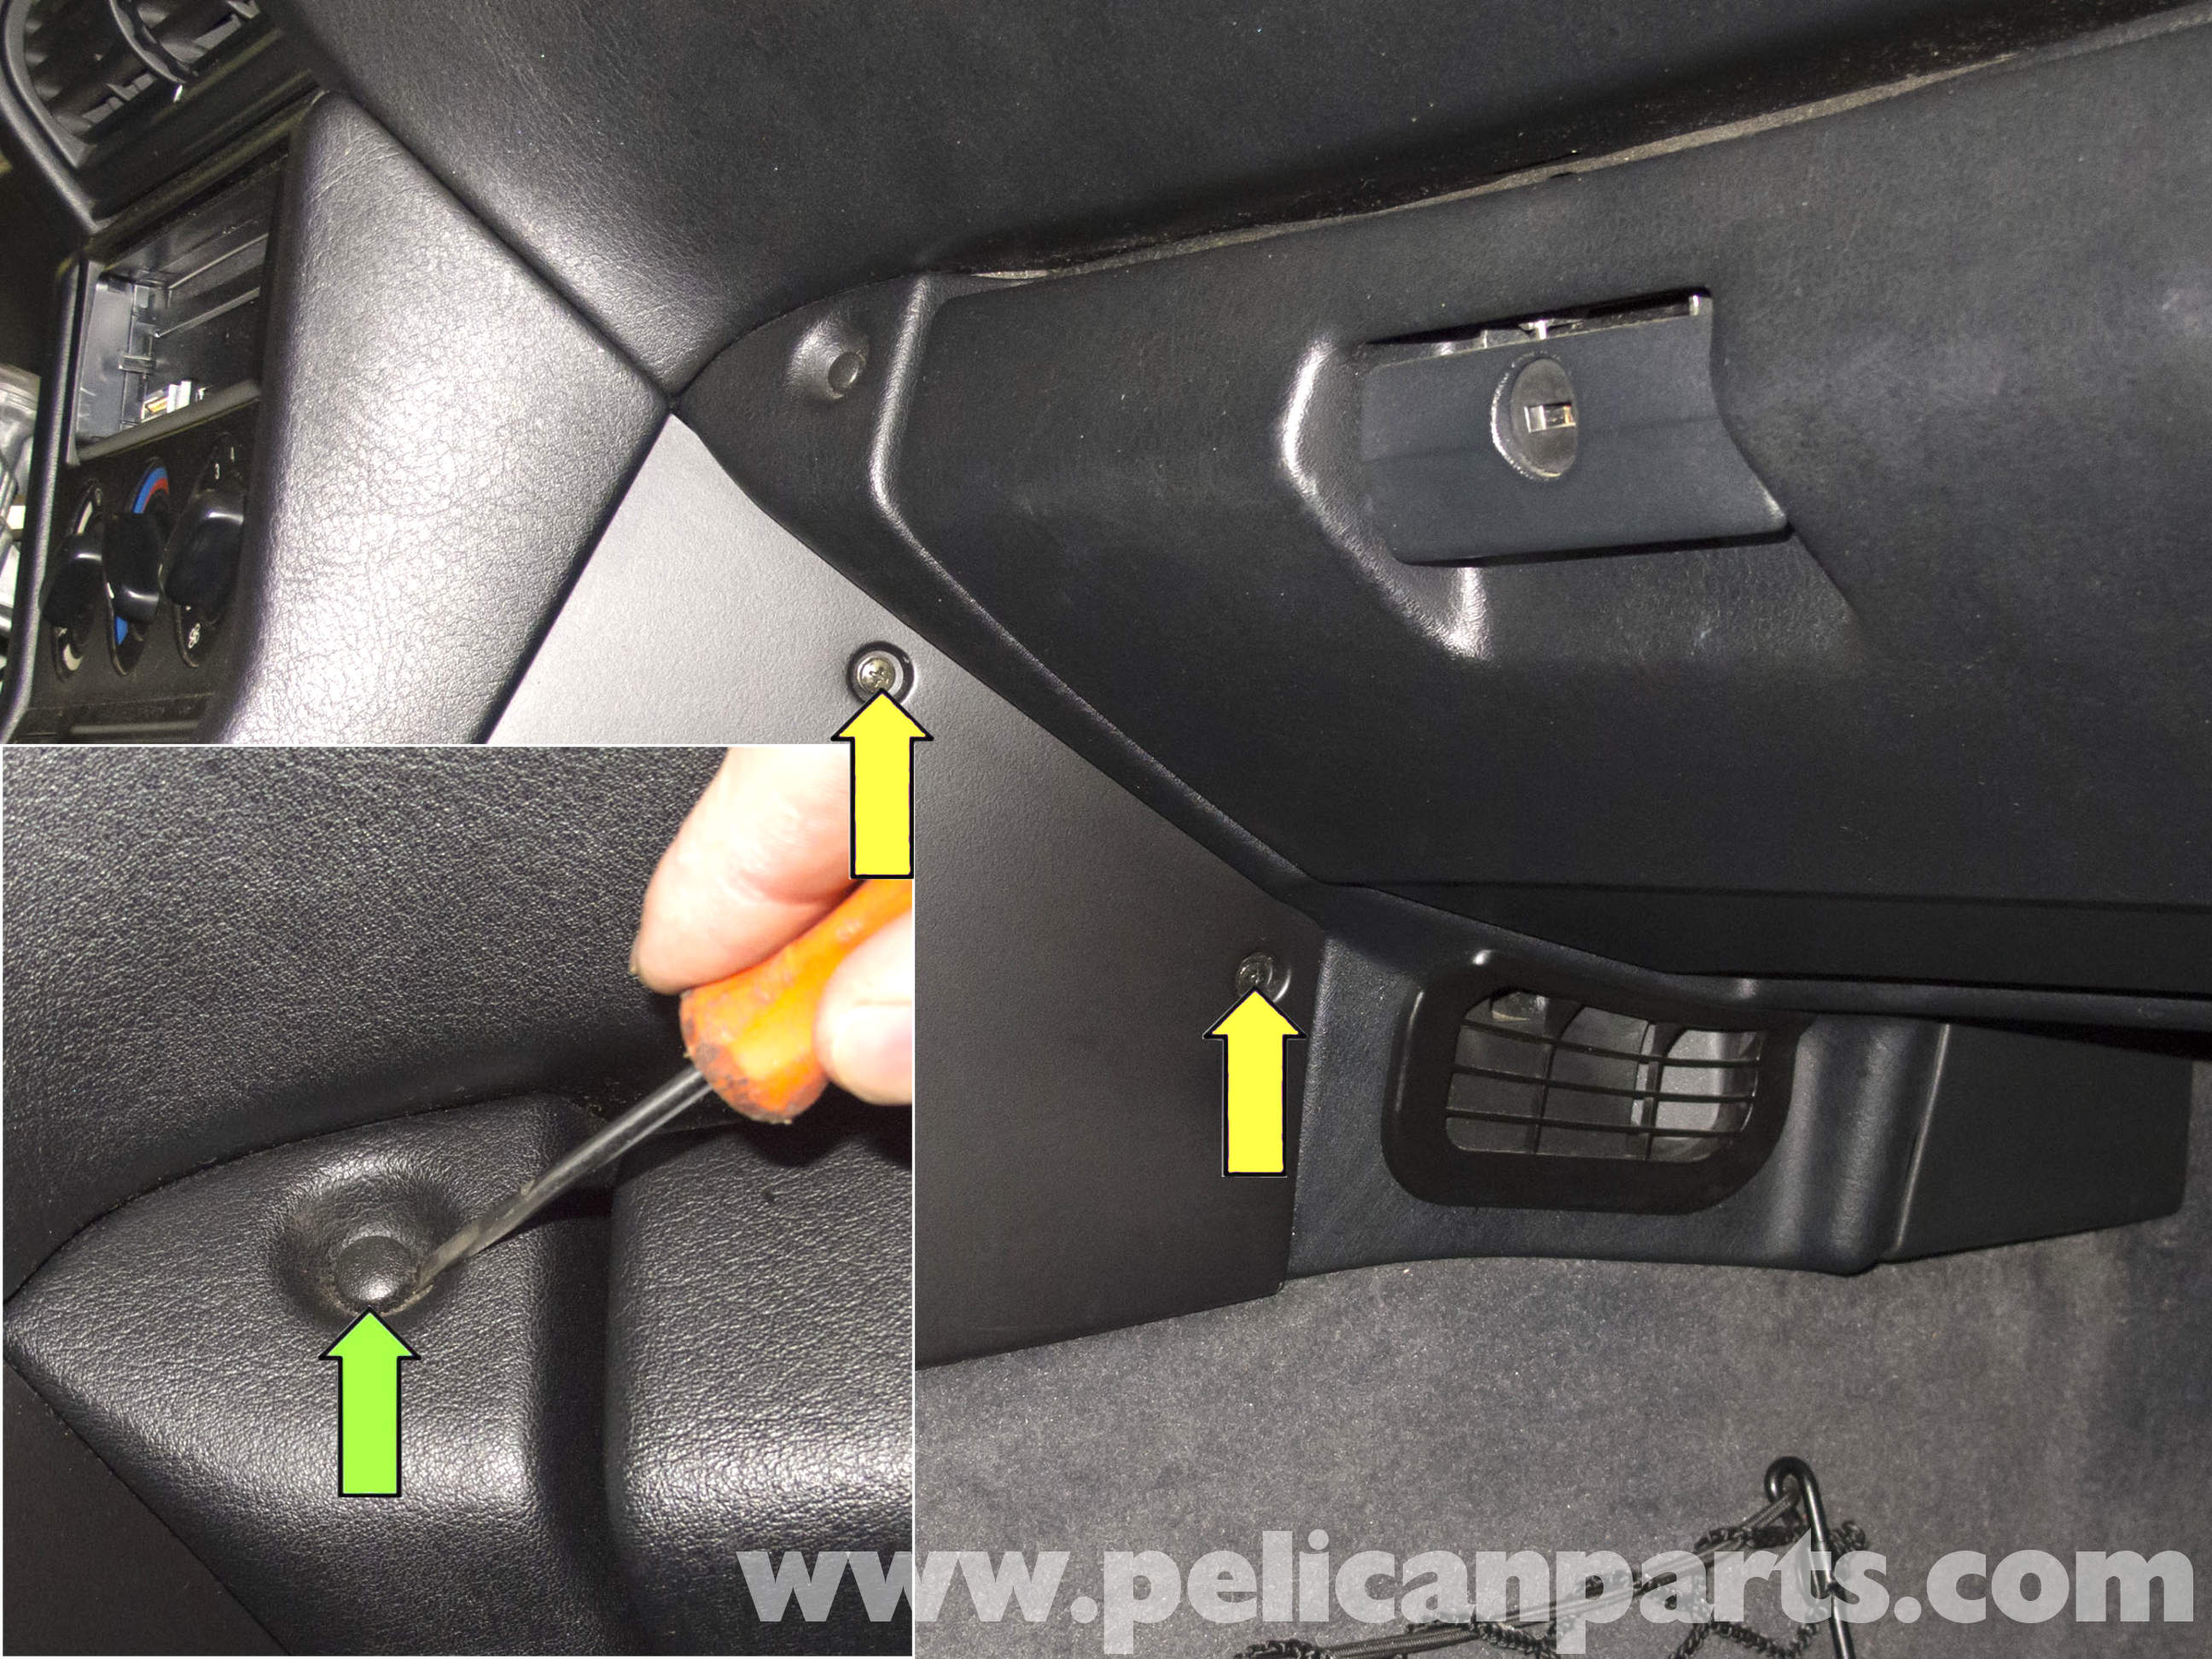 Bmw z3 center console replacement 1996 2002 pelican parts diy large image extra large image sciox Gallery